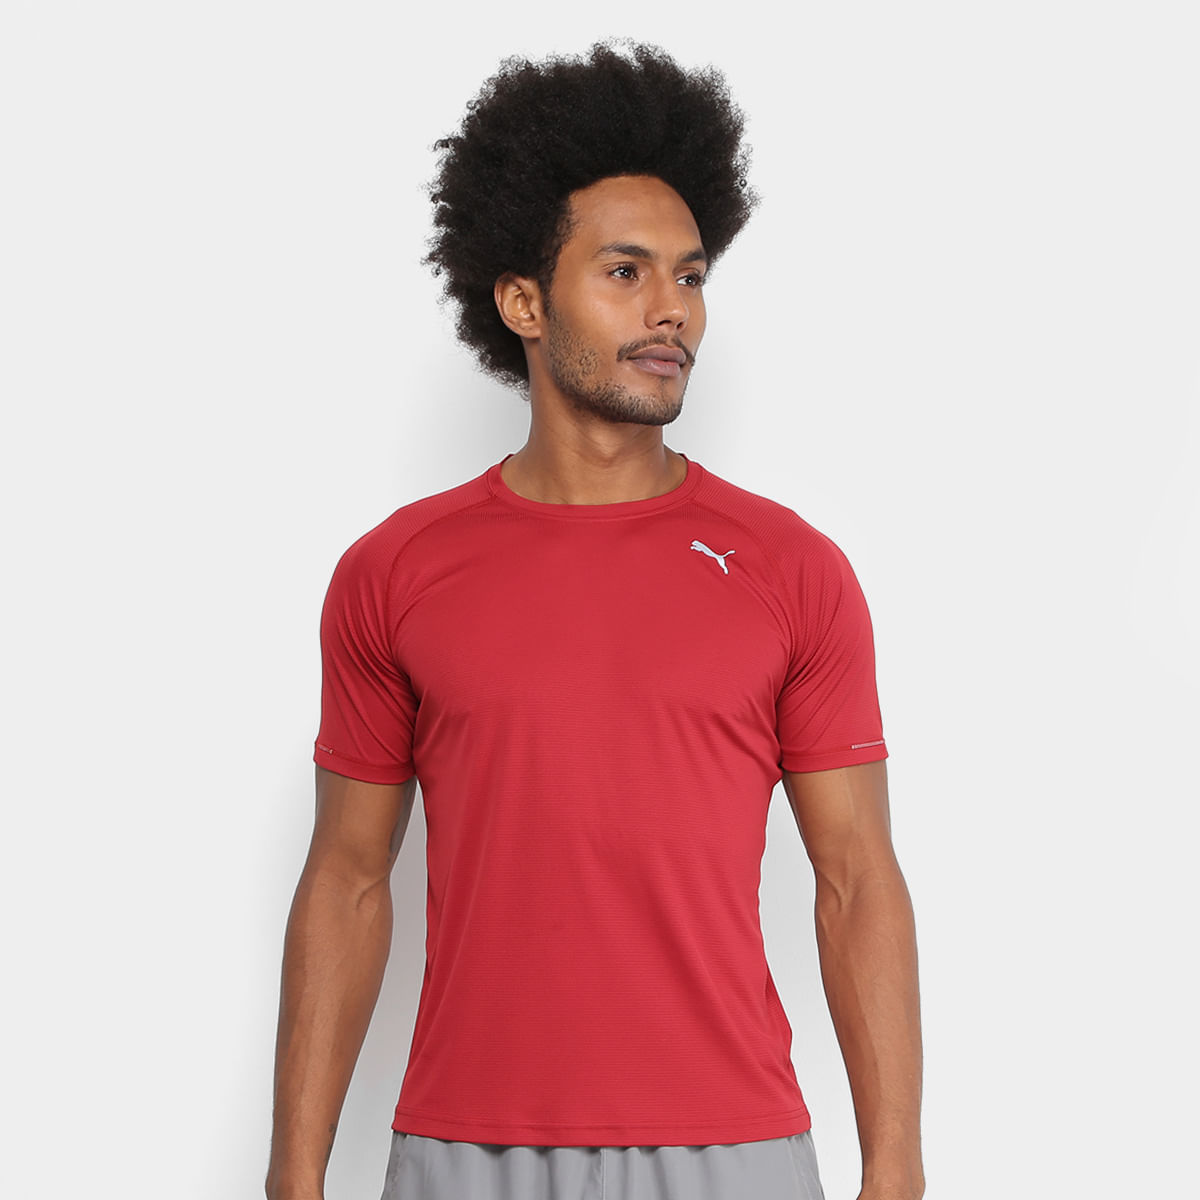 96038e77cd Camiseta Puma Core-Run Masculina - Comprar no ShopFácil - uma ...